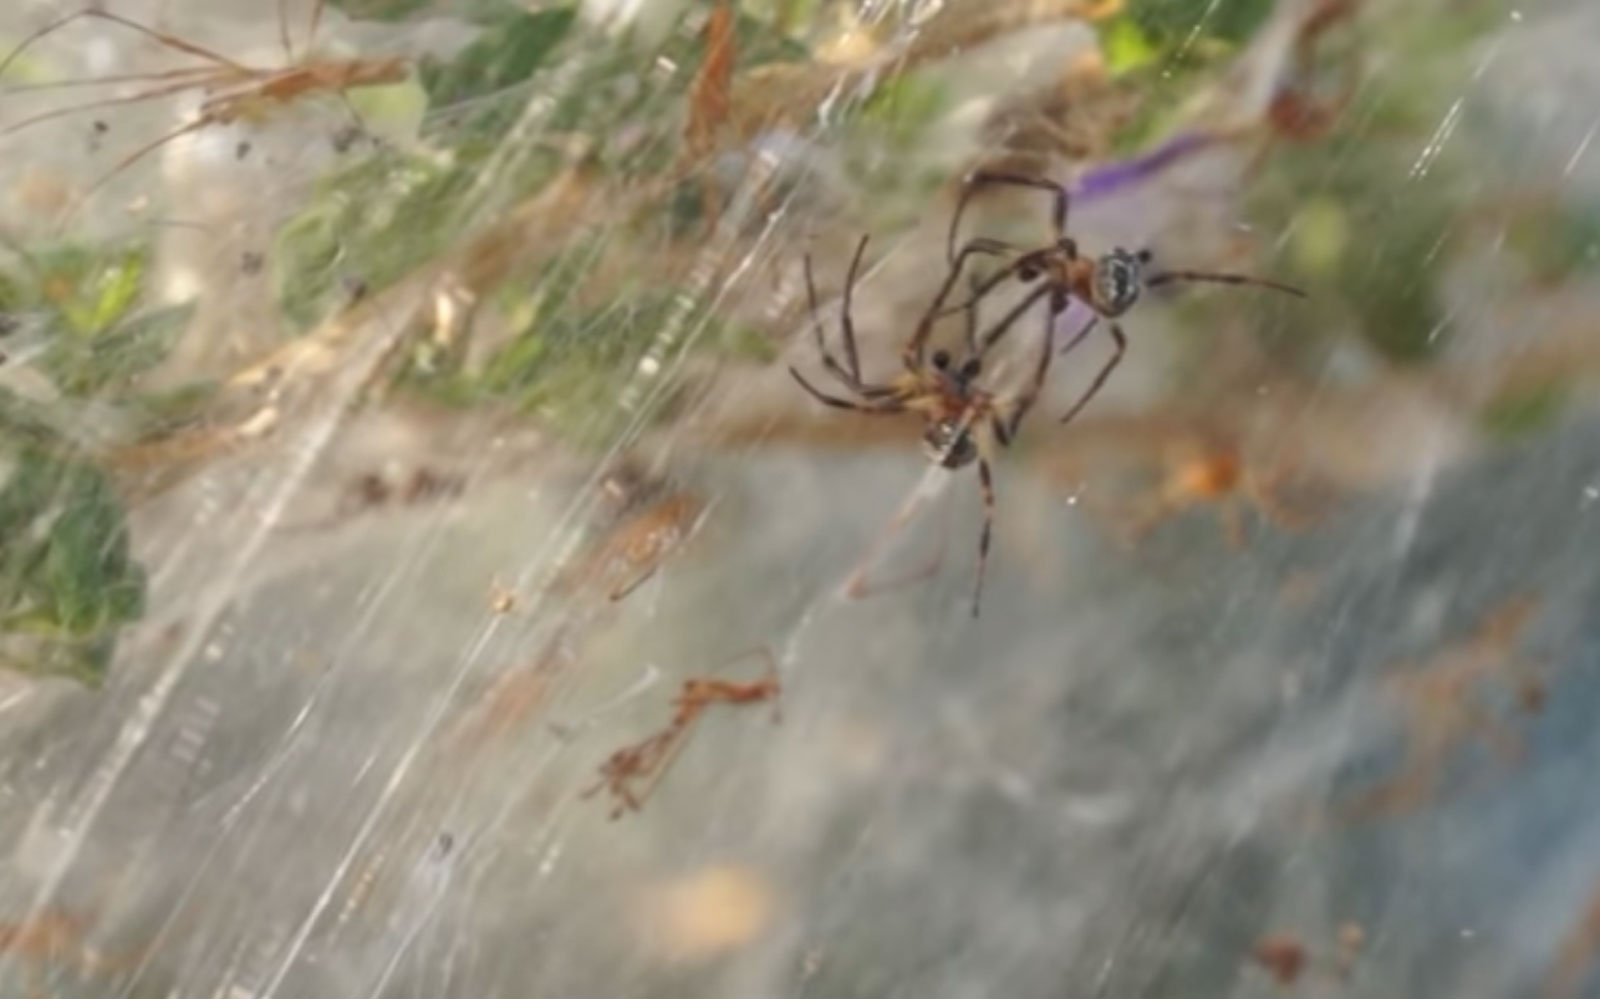 Thousands of spiders covered this Greek town in spooky webs just in time for Halloween